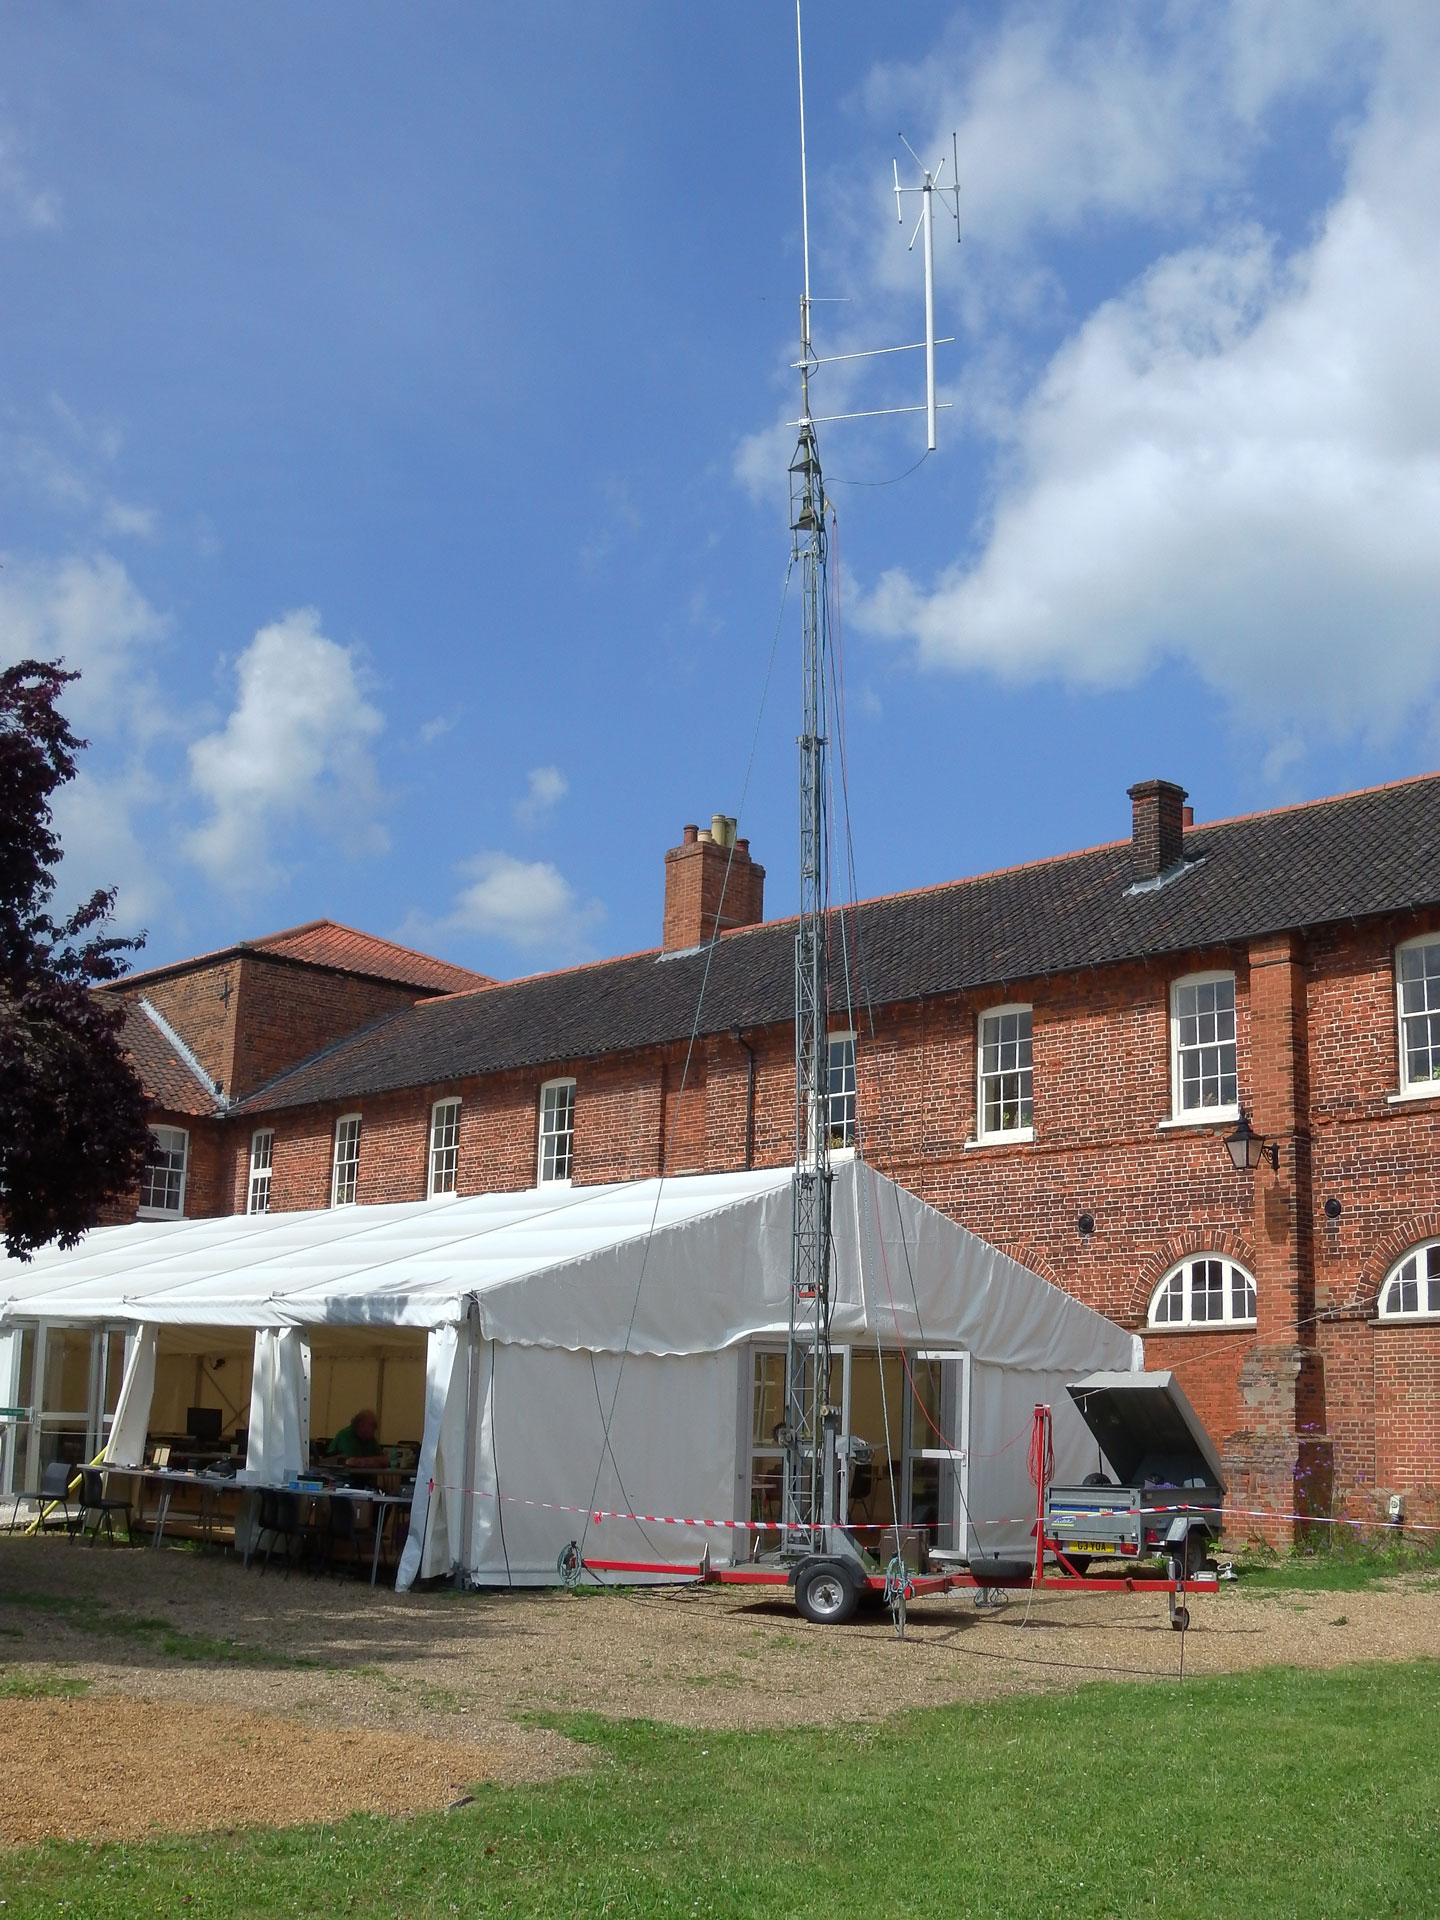 GB5GFW base for the weekend